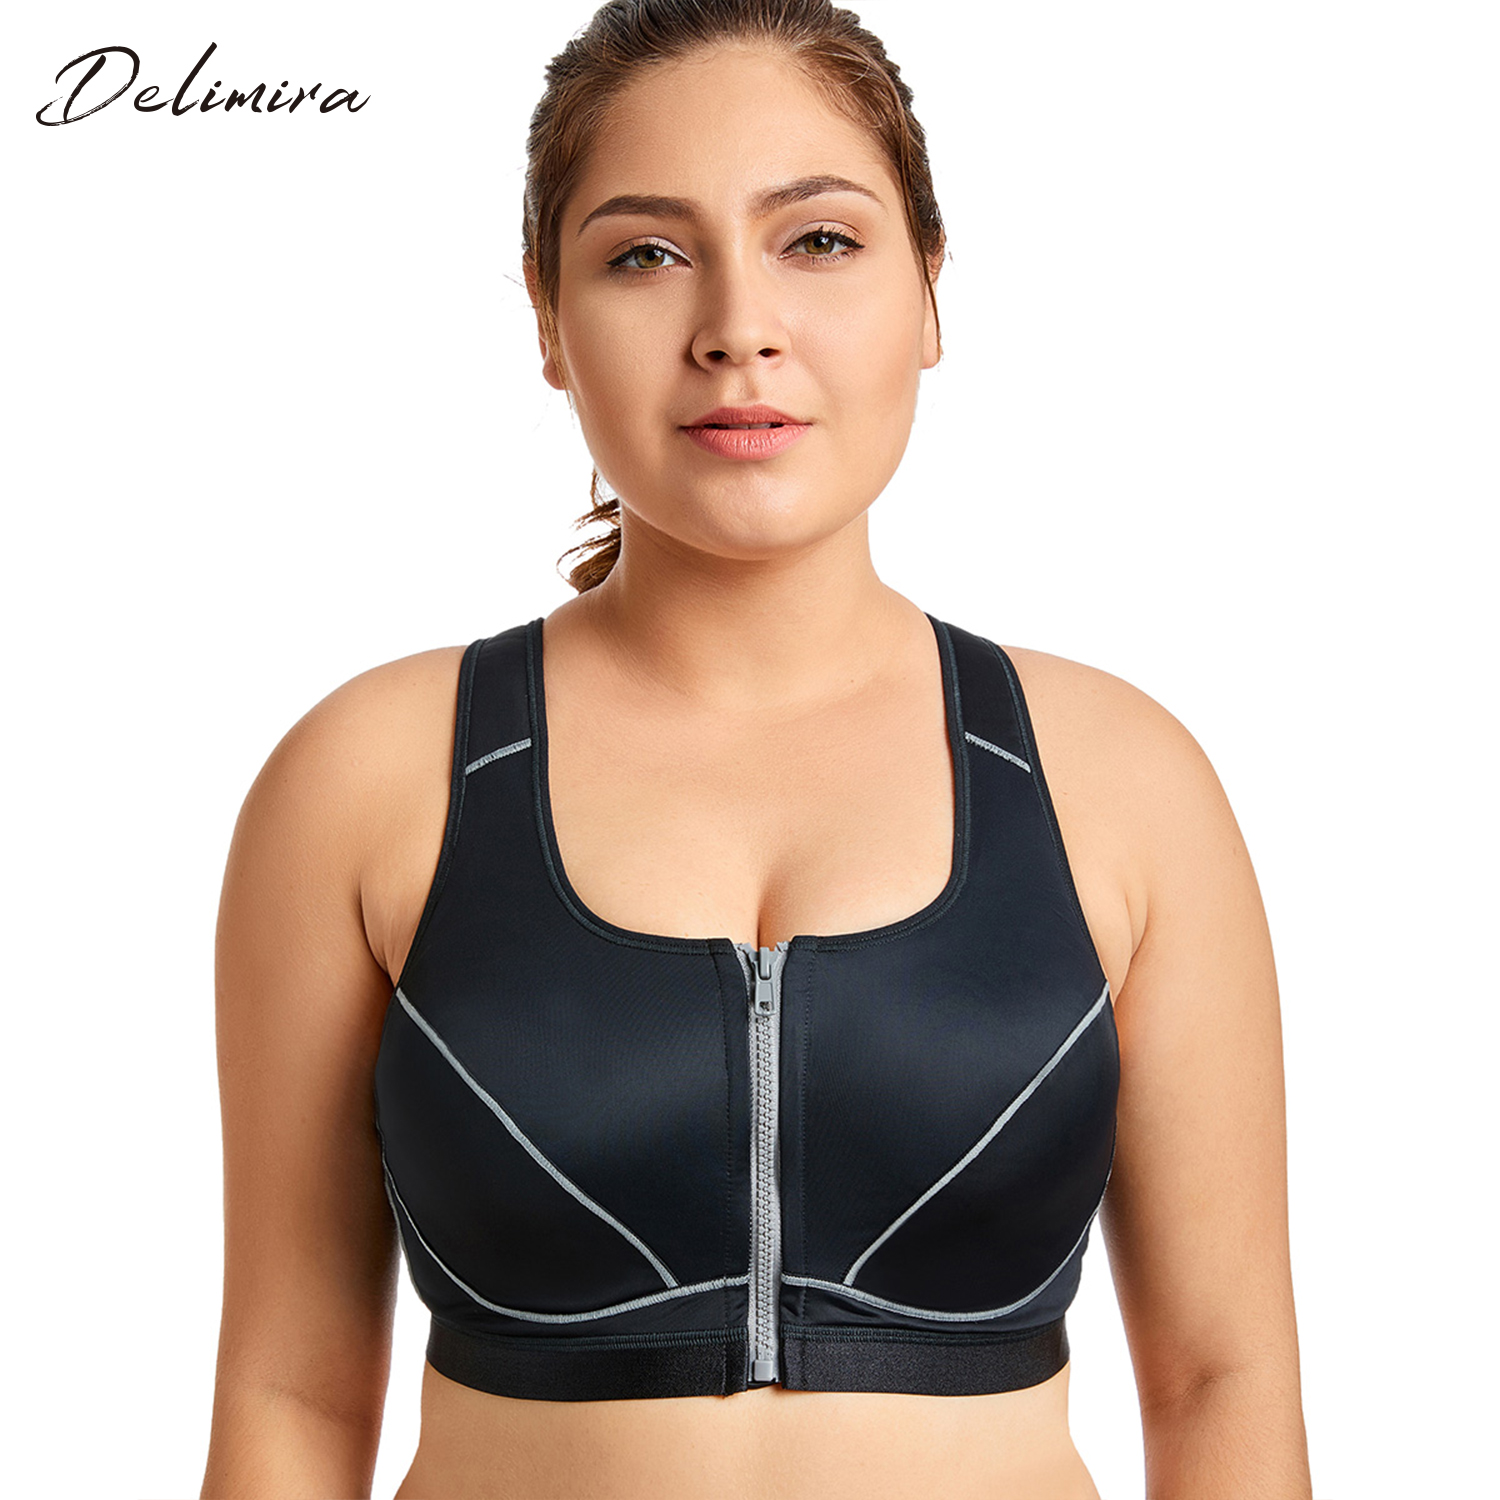 359c00af06a Detail Feedback Questions about Women s High Impact Front Closure Racerback  Full Support Padded Fitness Bra on Aliexpress.com